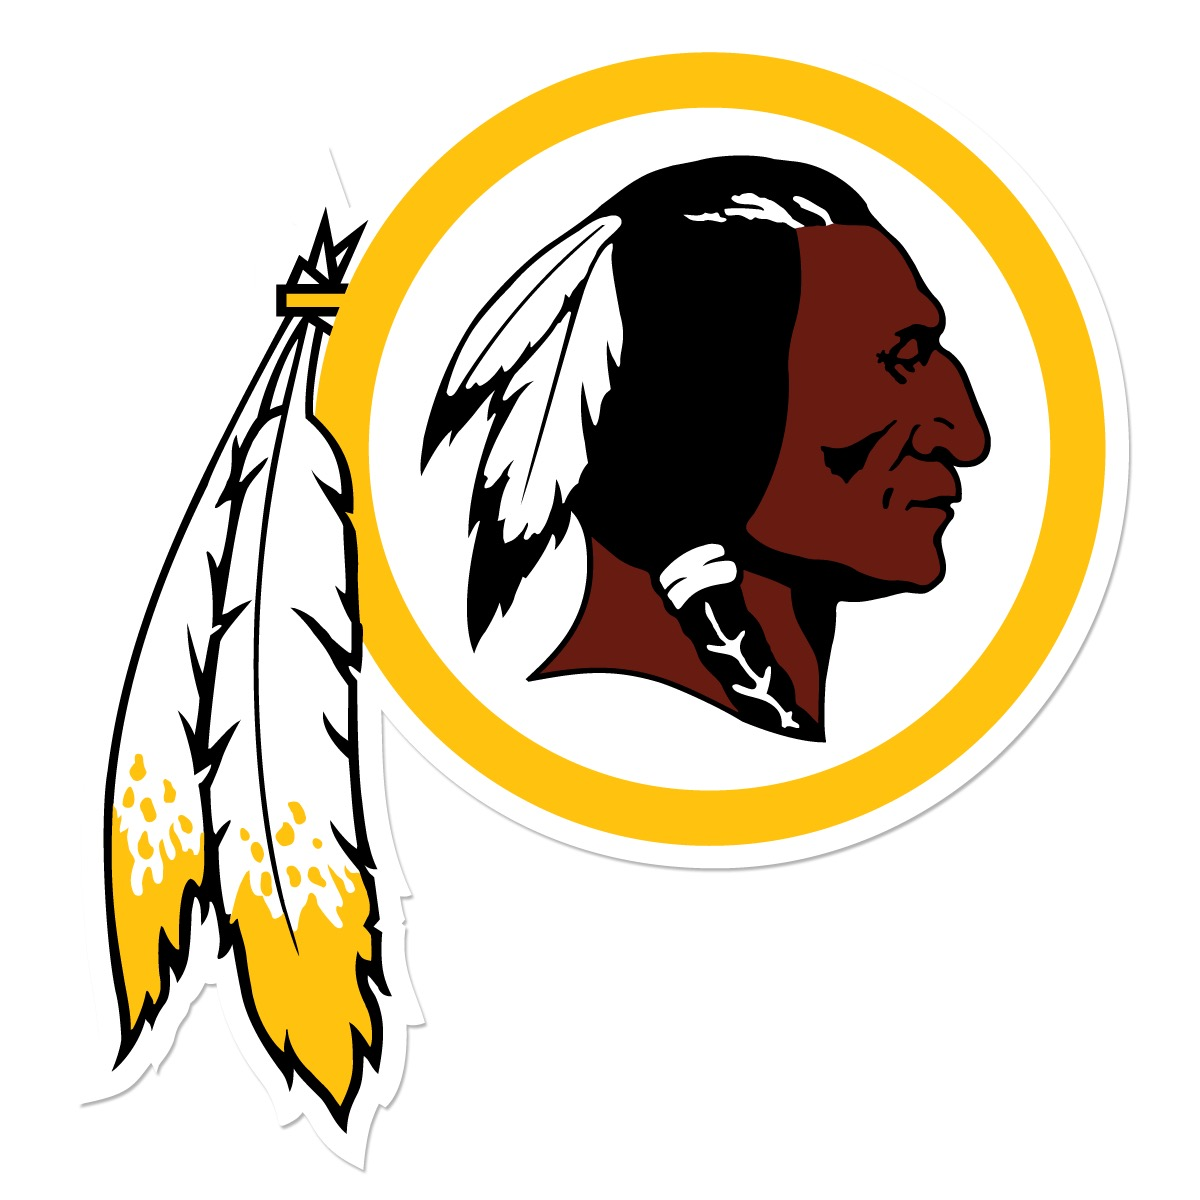 The Slants' trademark appeal opens the door to Redskins' re-registration